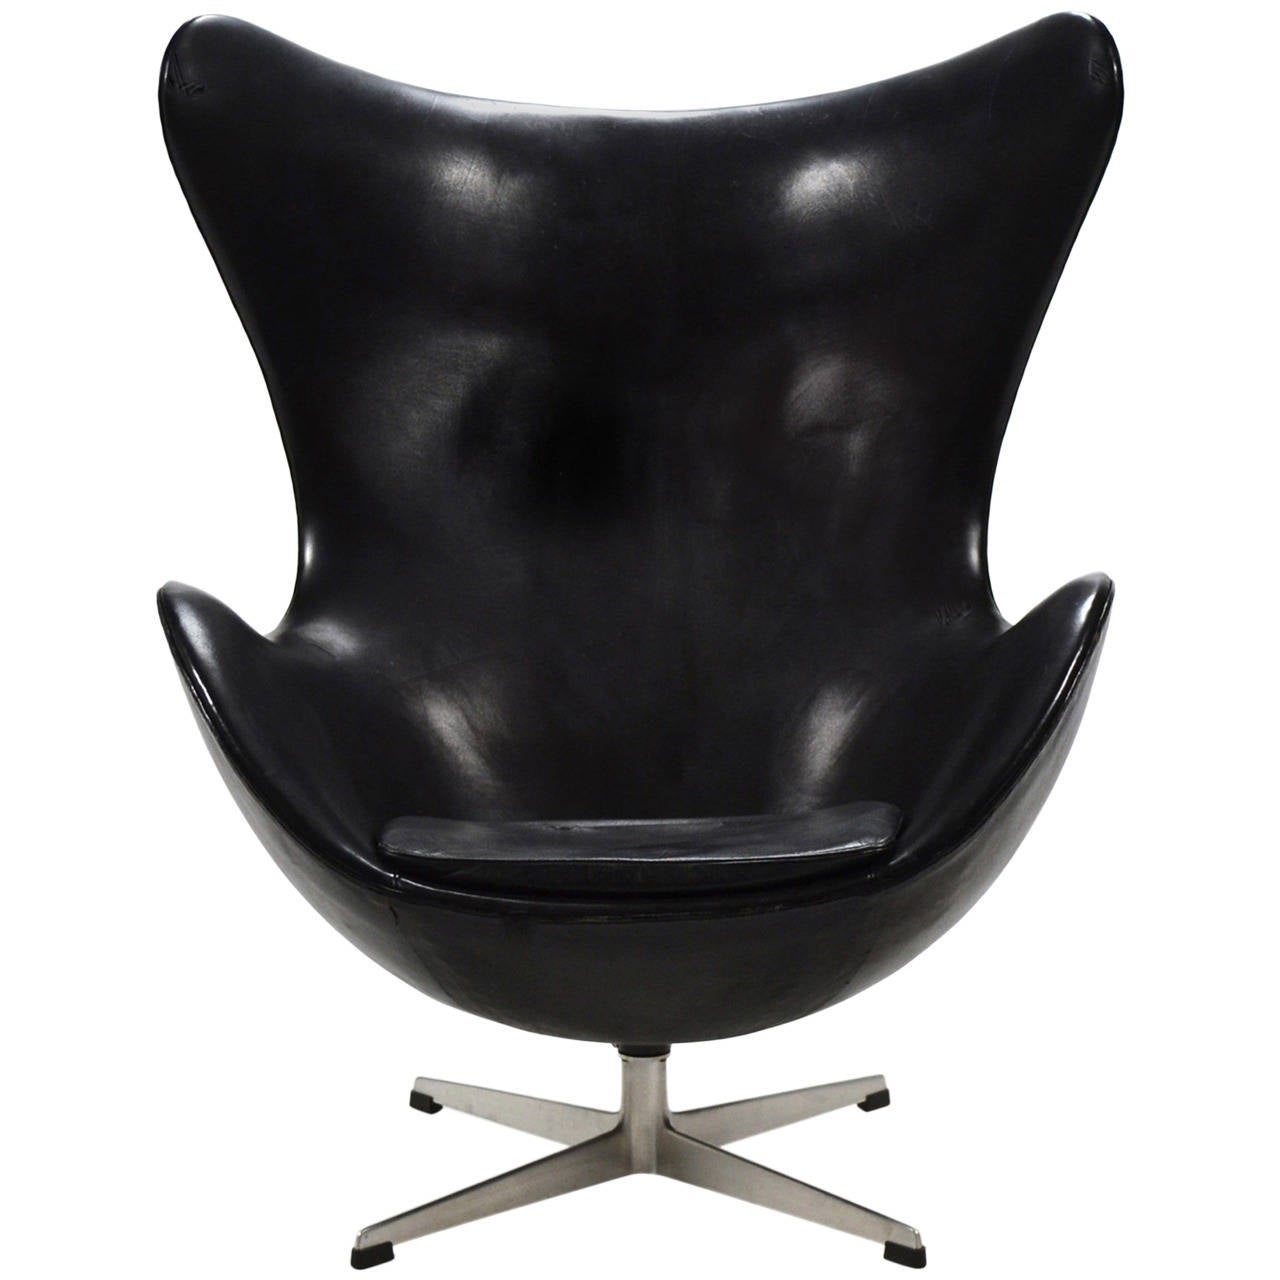 Arne jacobsen egg chair leather - Arne Jacobsen Early Egg Chair In Original Black Leather